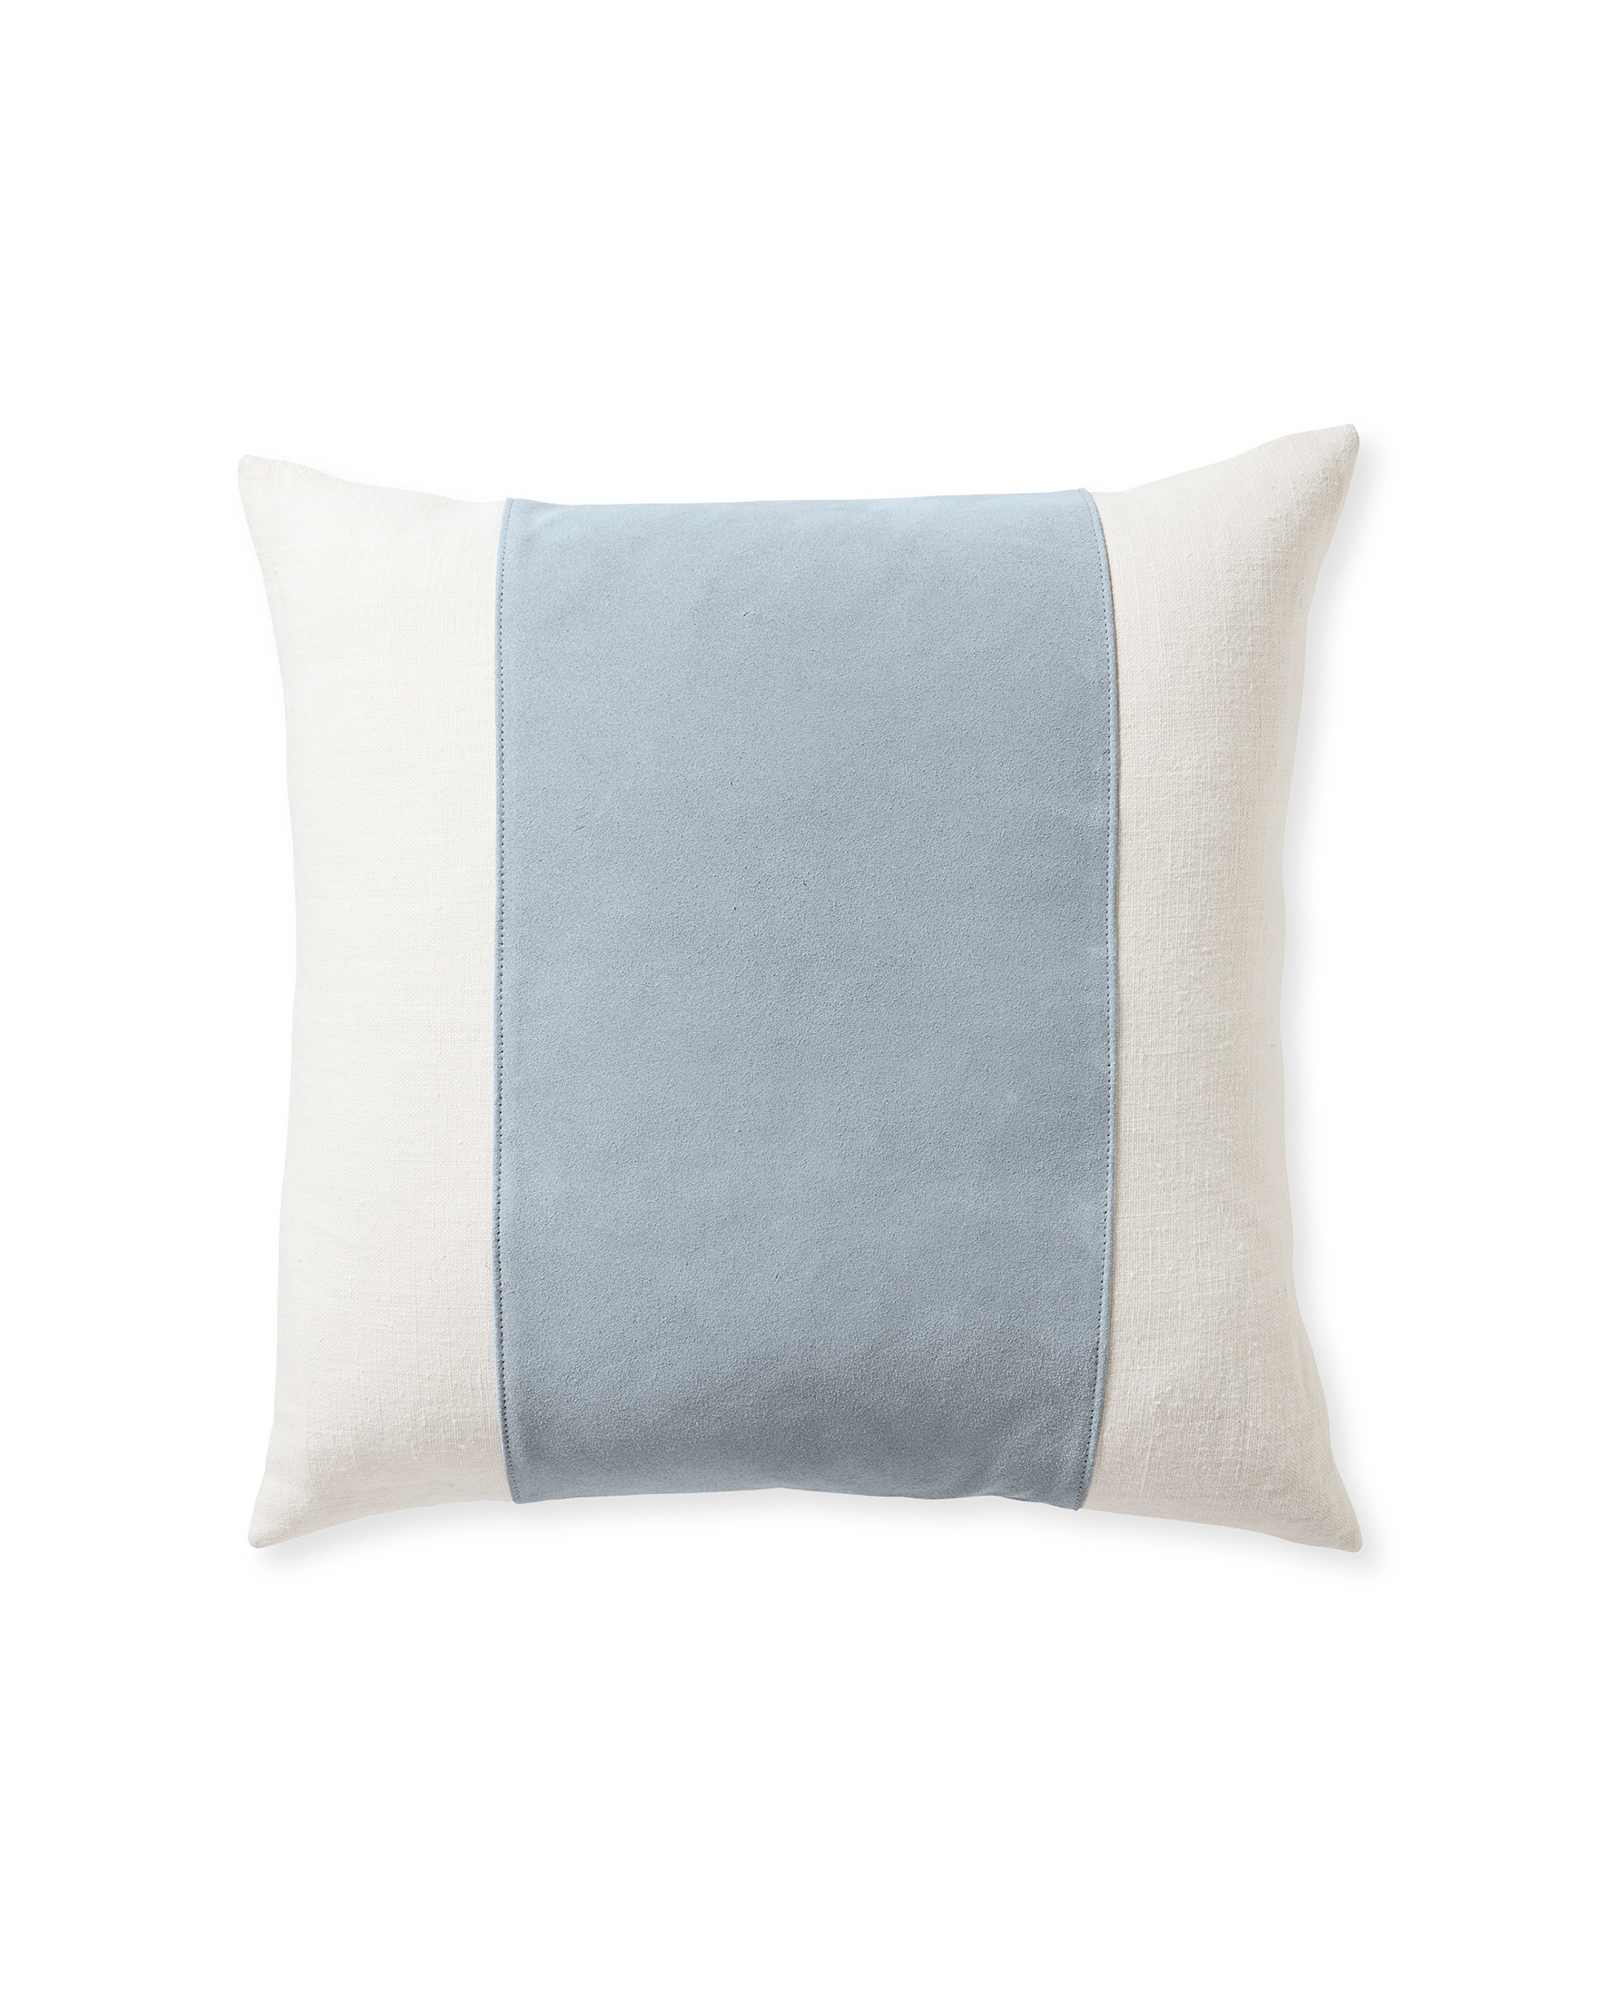 North Lake Pillow Cover, Coastal